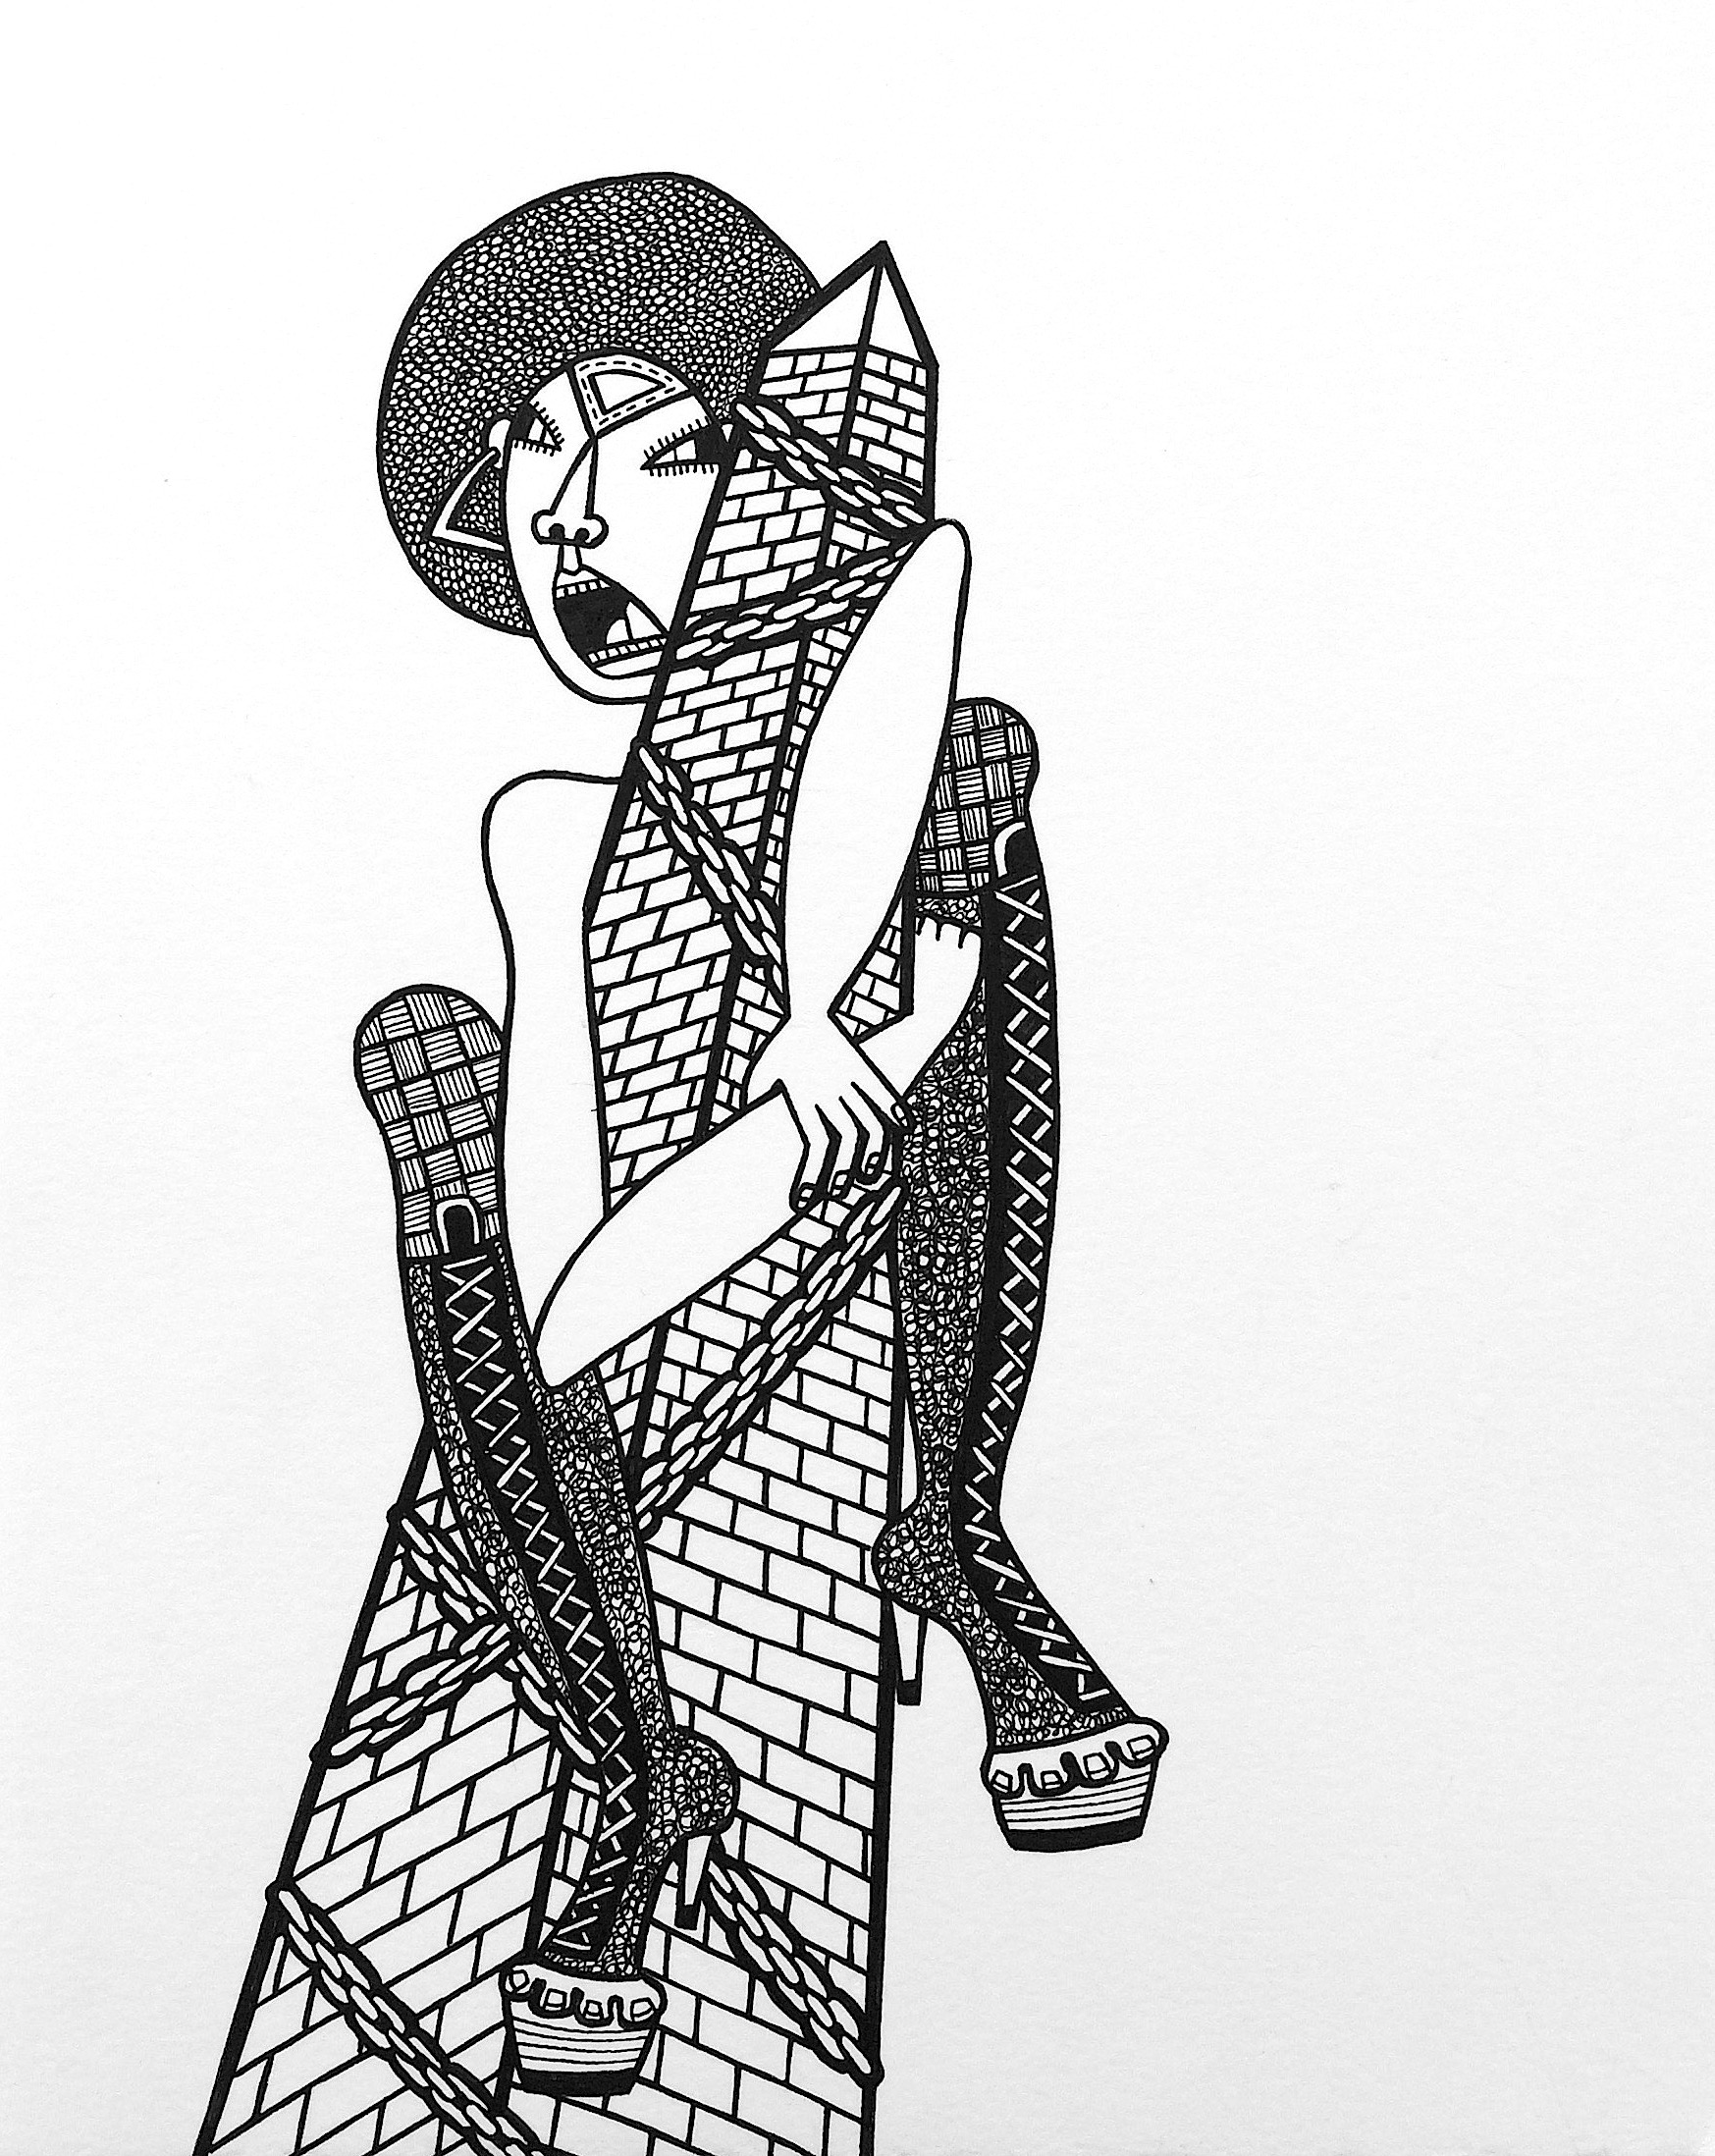 On Top, ink on paper, 10 x 8 inches, 2015, private collection